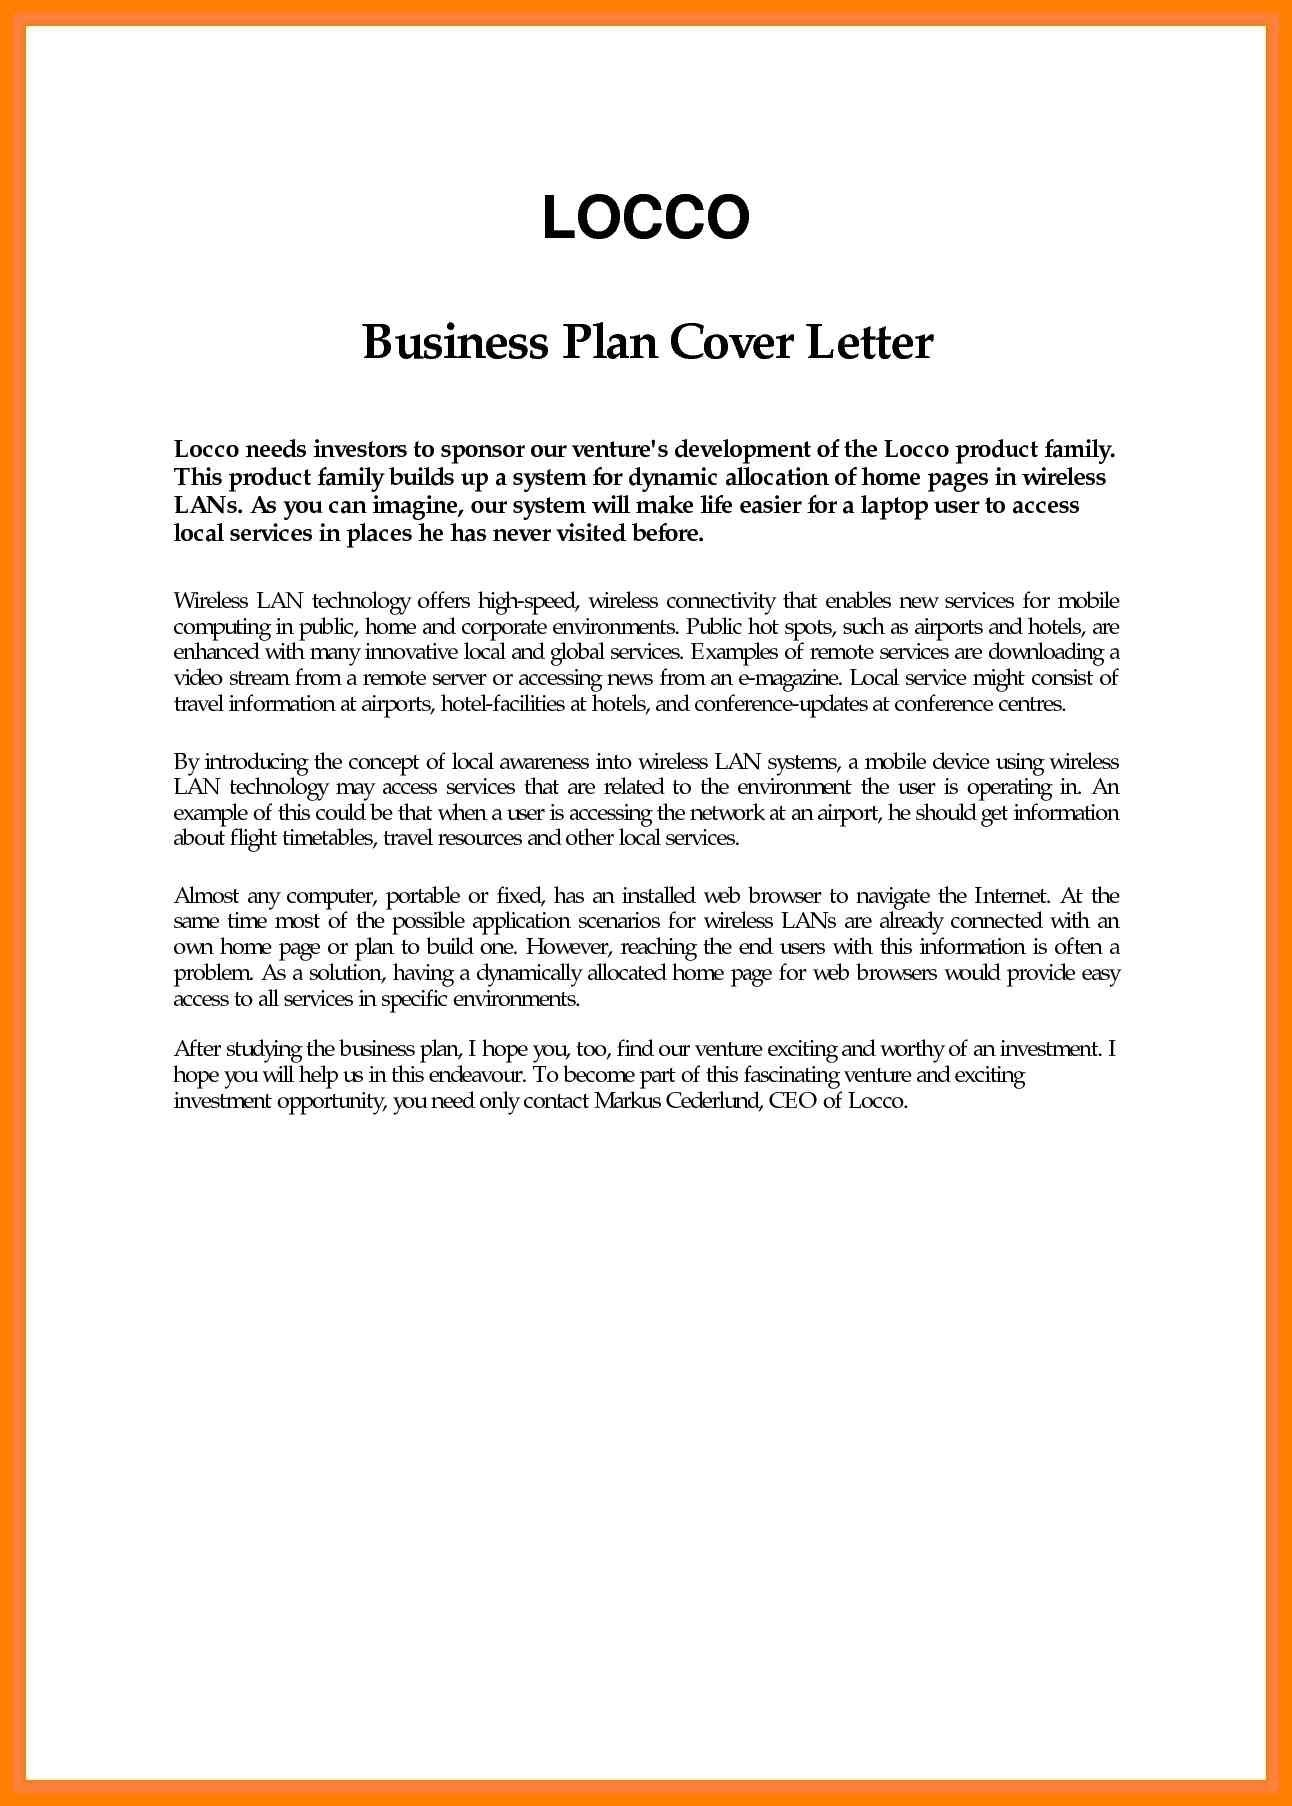 Business Introduction Letter Examples from dailyroabox.com